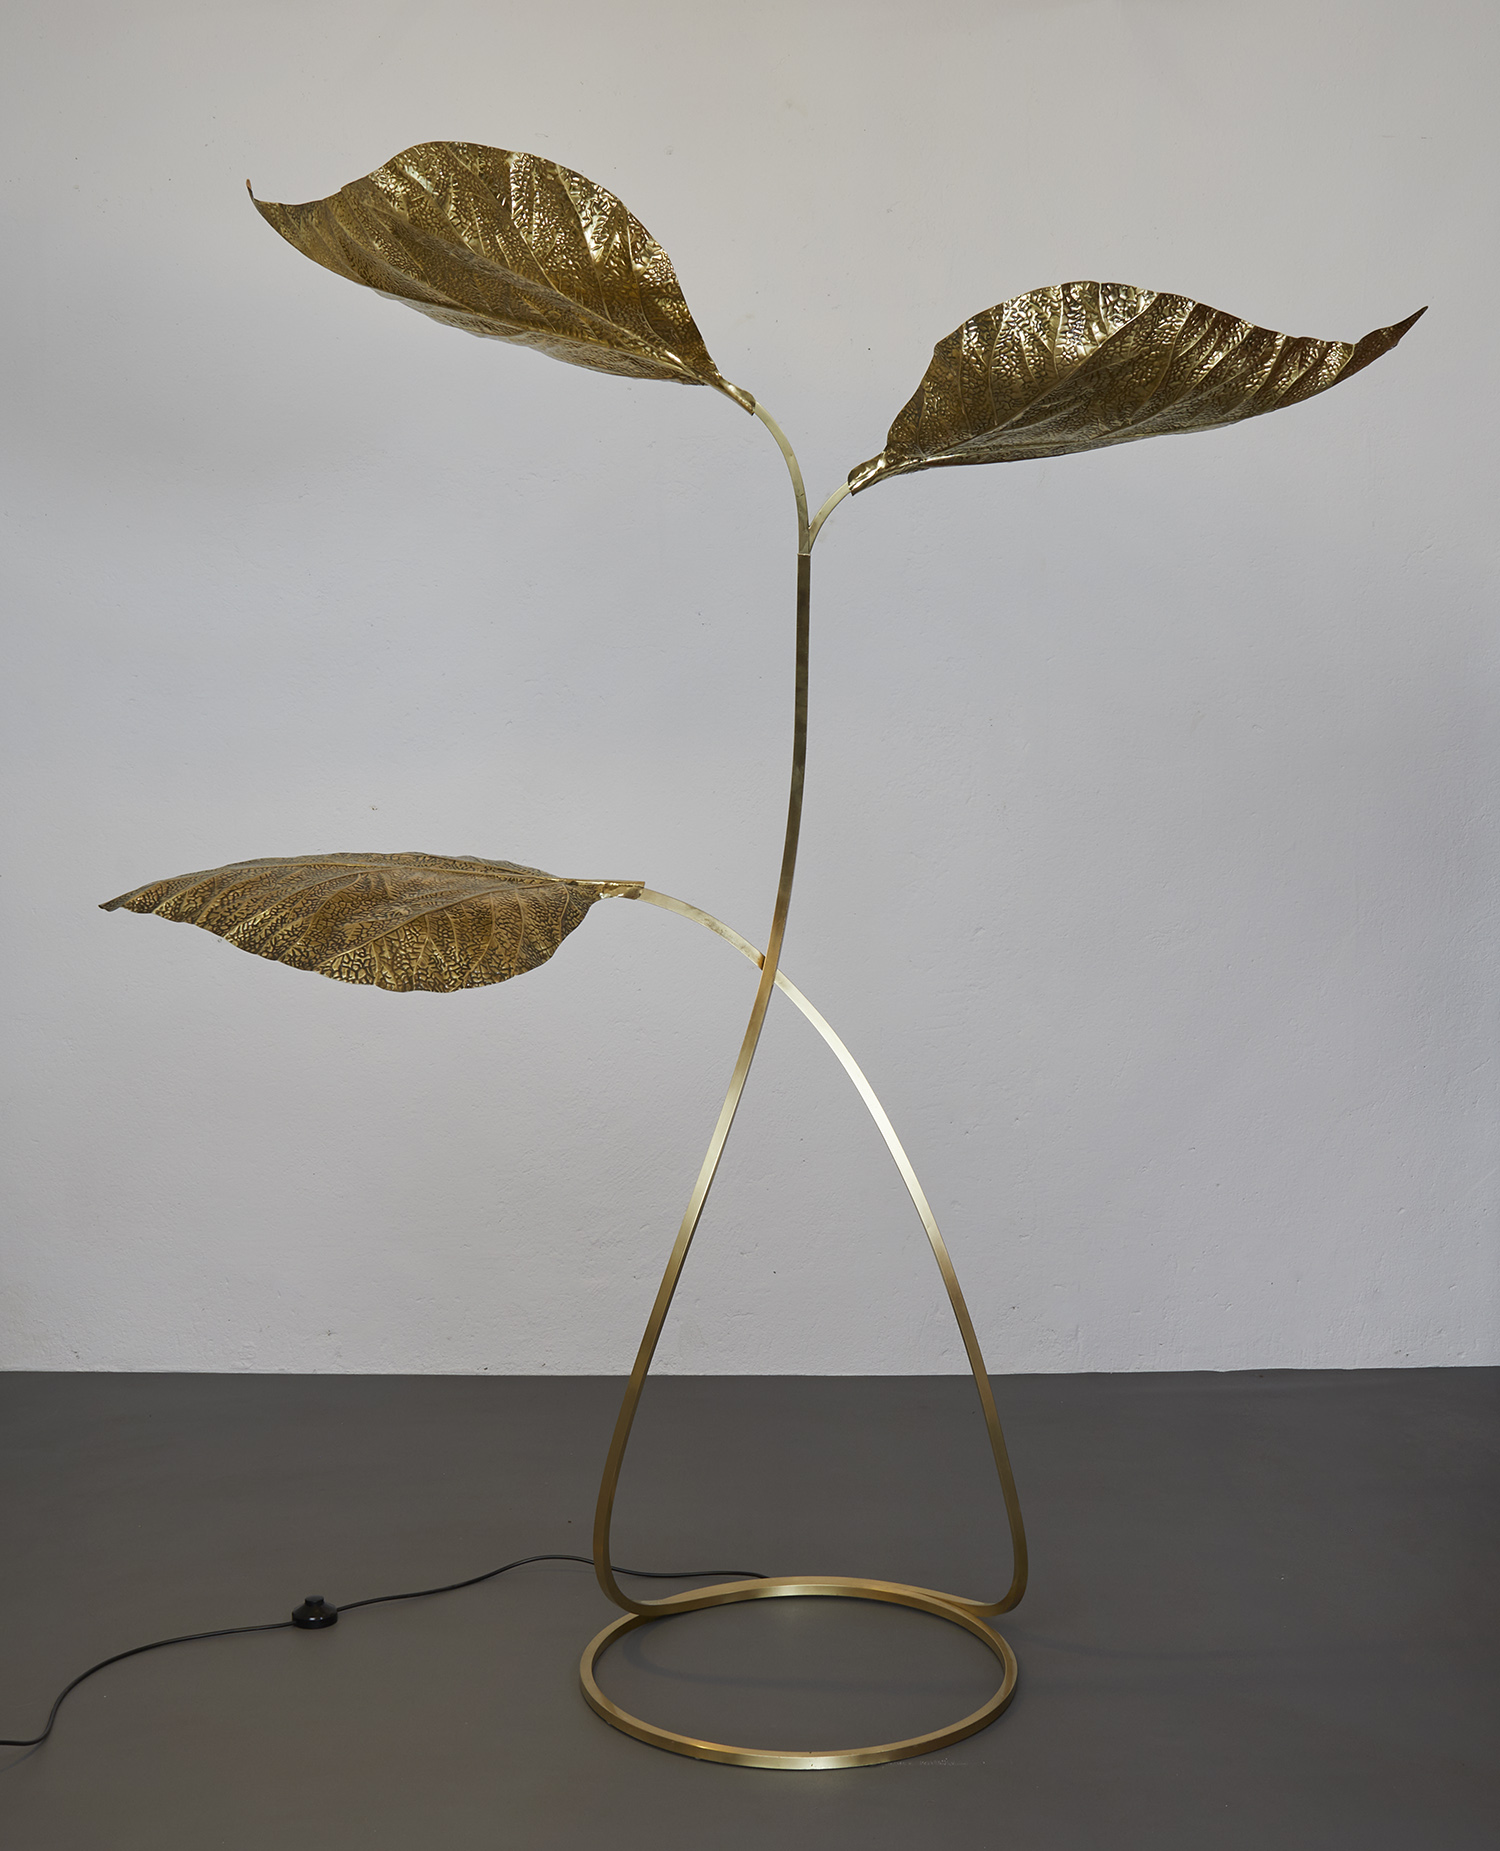 carlo-giorgi-brass-floor-lamp-with-three-leaves-for-bottega-gadda-italy-1970-image-13